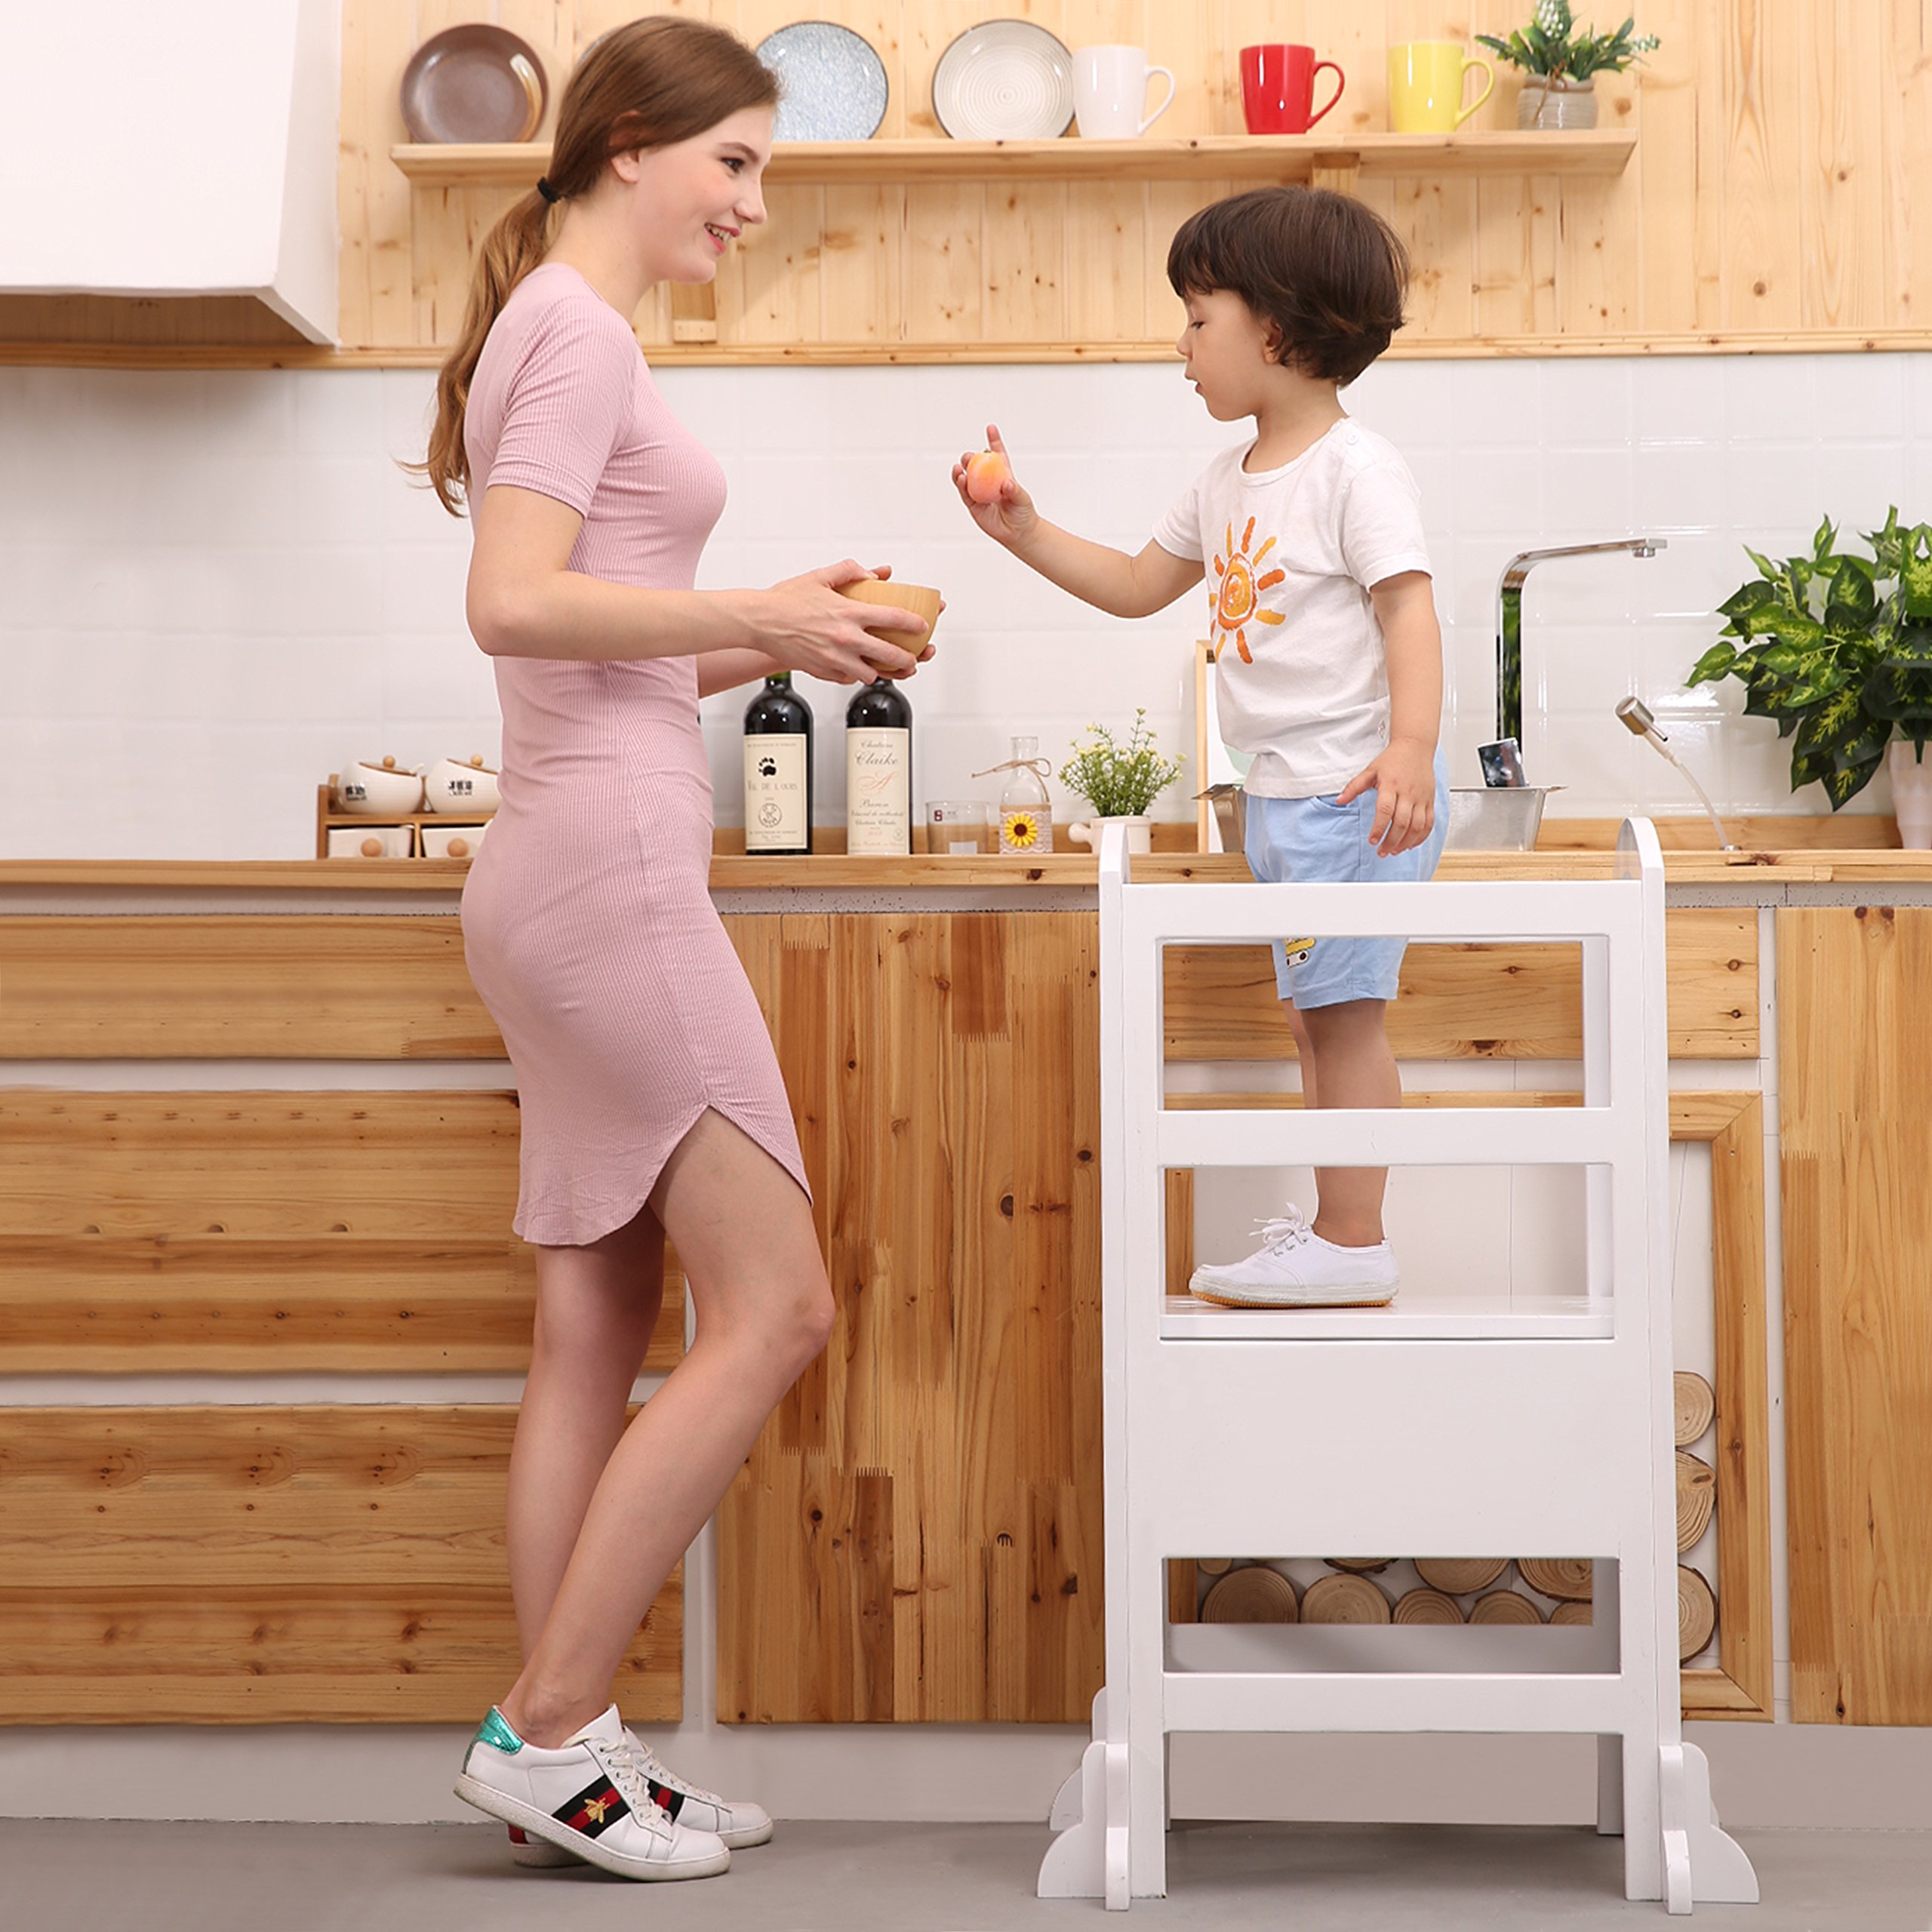 UNICOO- Height Adjustable Kids Learning Stool, Kids Kitchen Step Stool, with Safety Rail-Solid Hardwood Construction. Perfect for Toddlers (White - 02) by UNICOO